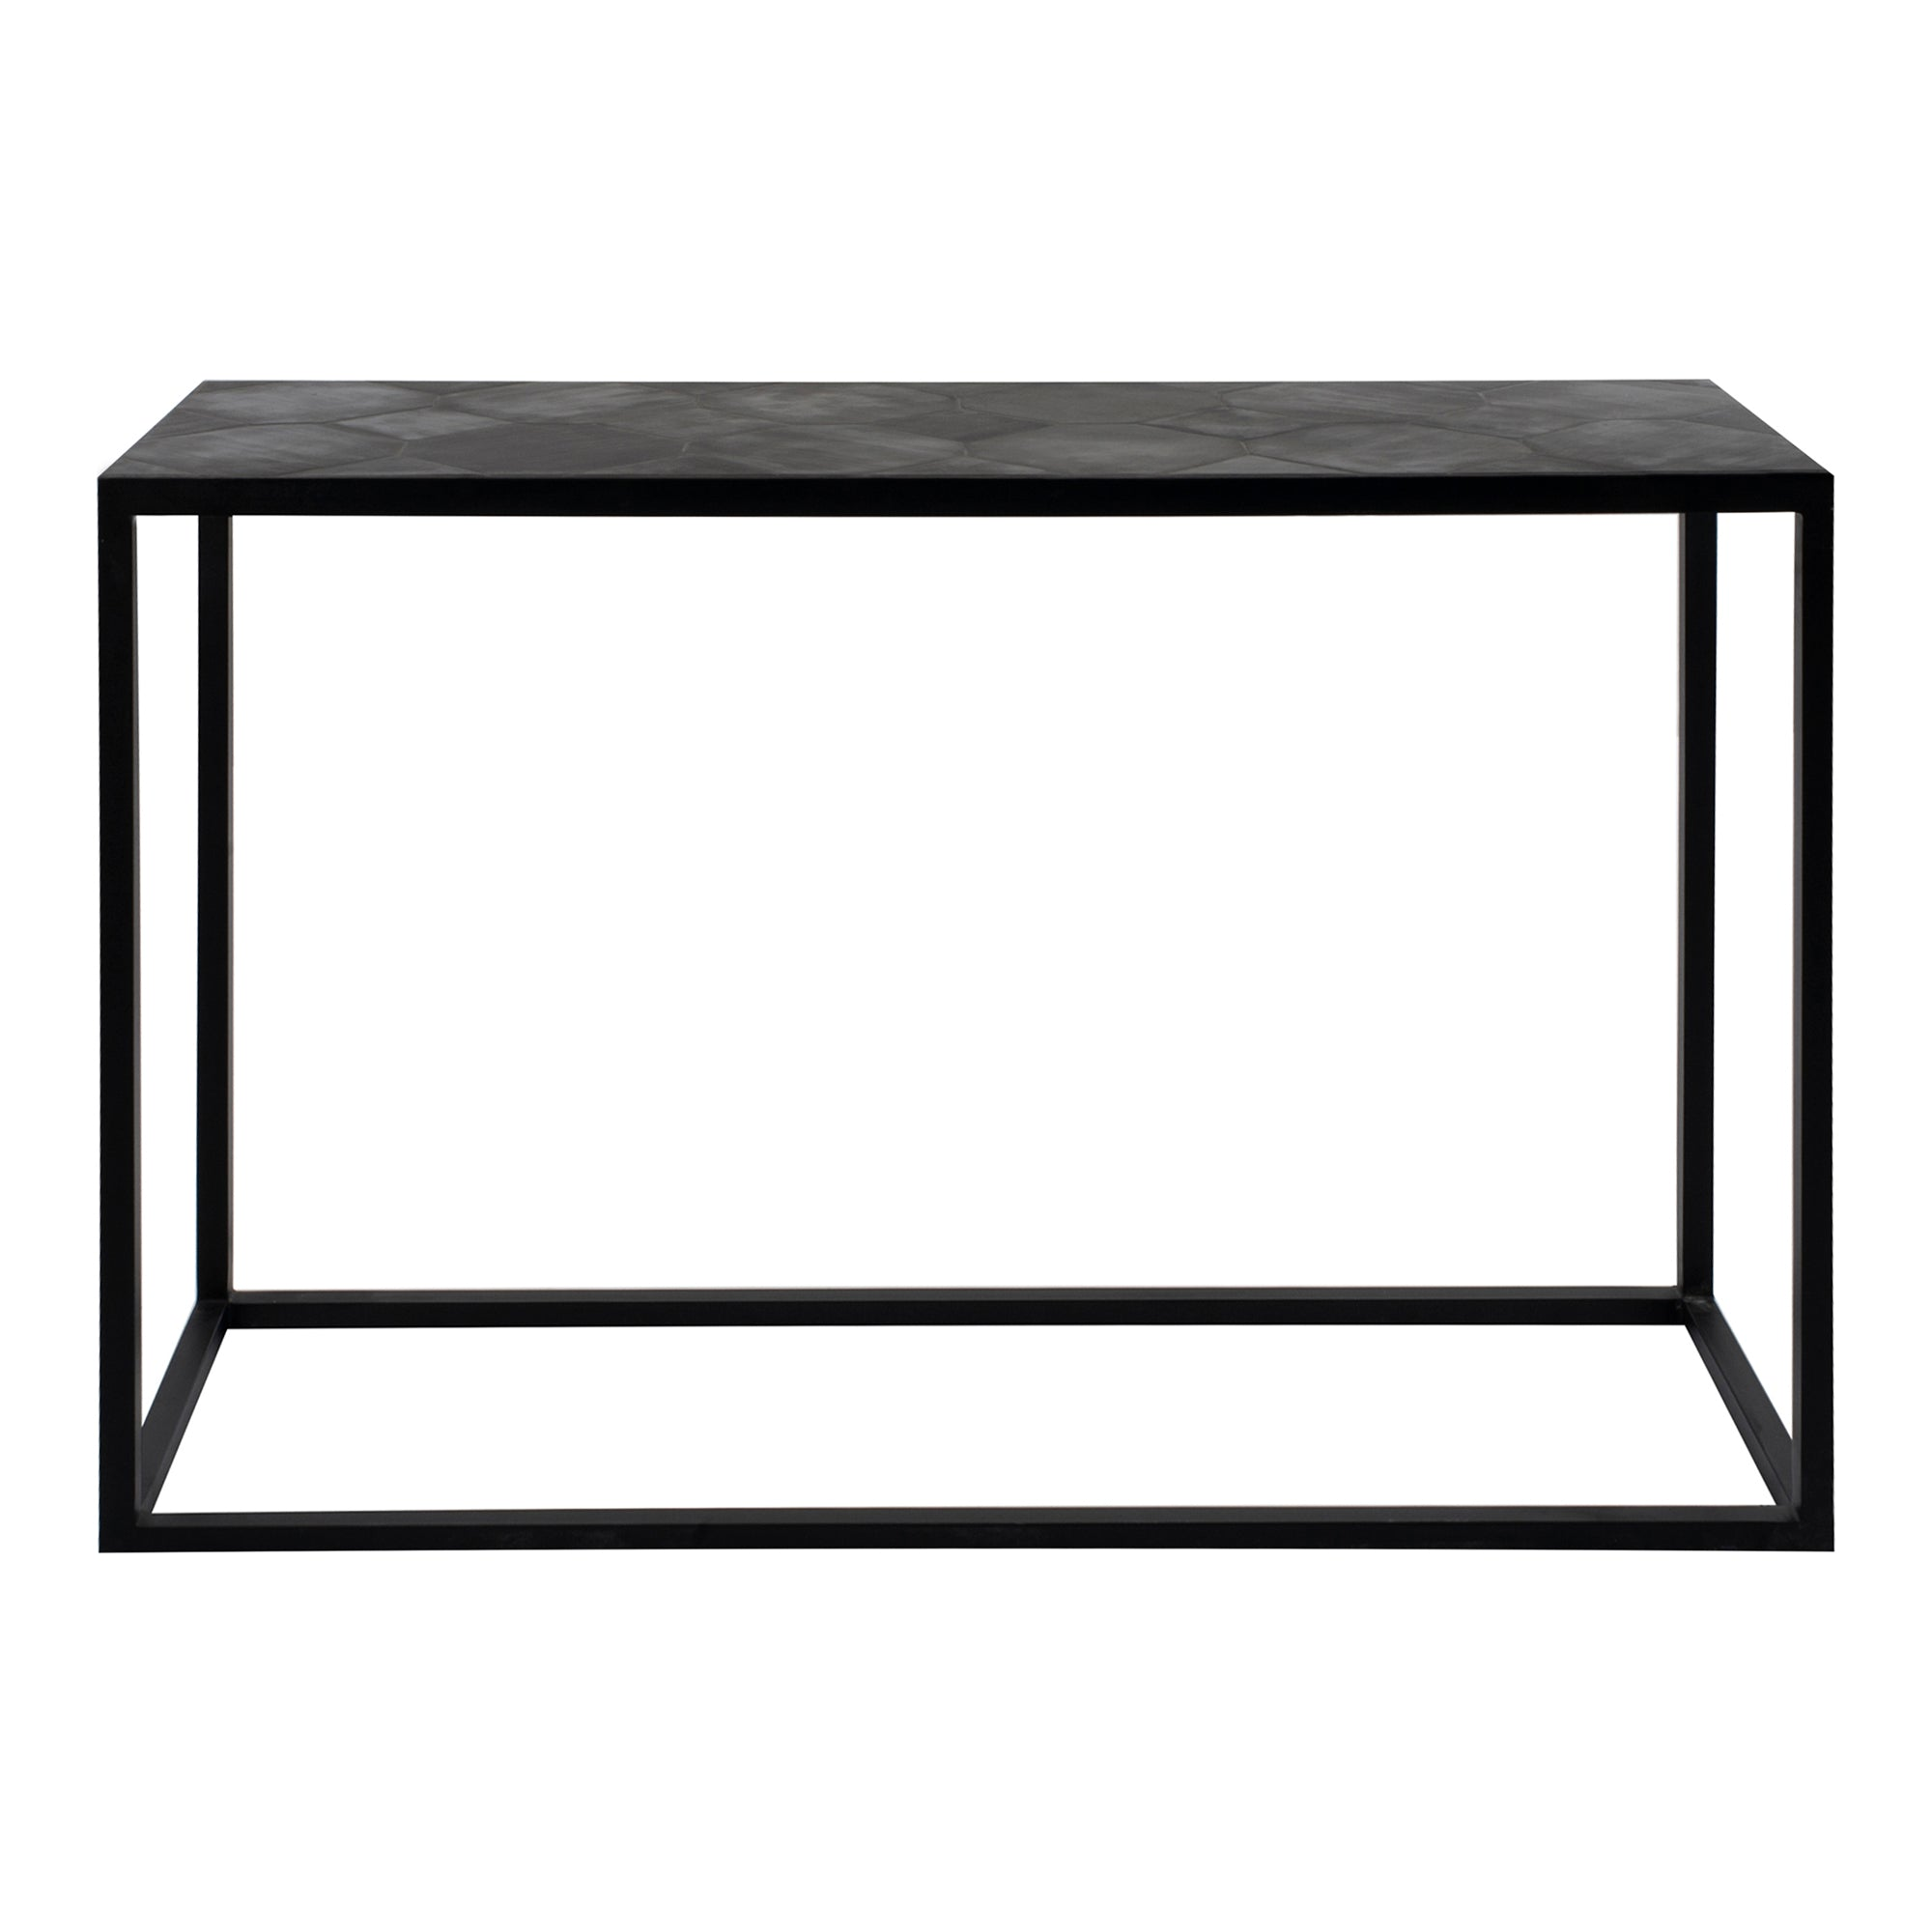 Tyle console table, black - Tops-Dress